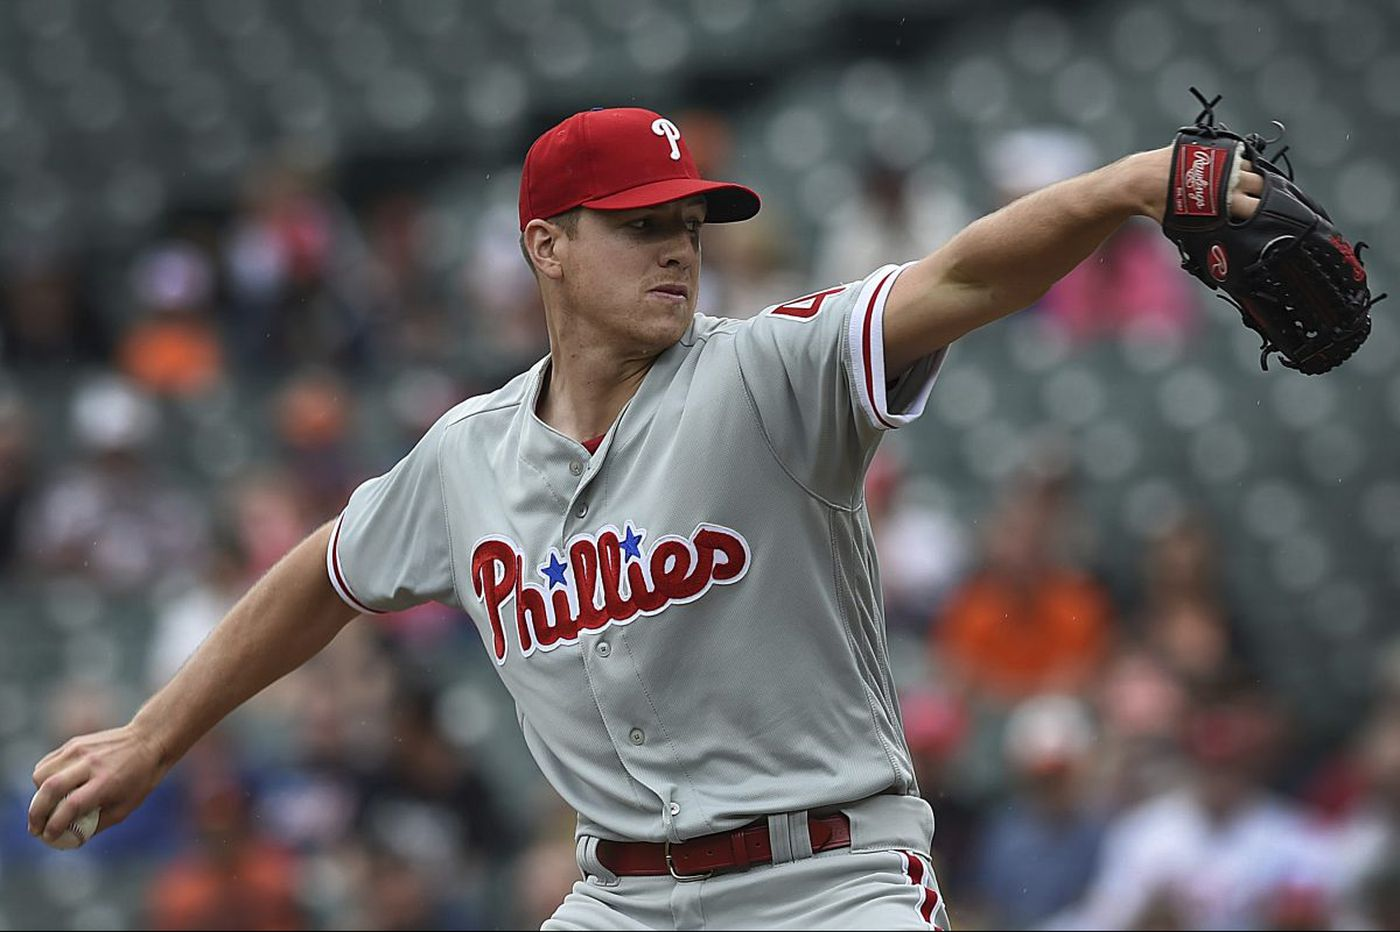 Nick Pivetta notches career-high 11 strikeouts, Phillies dominate Orioles to win again